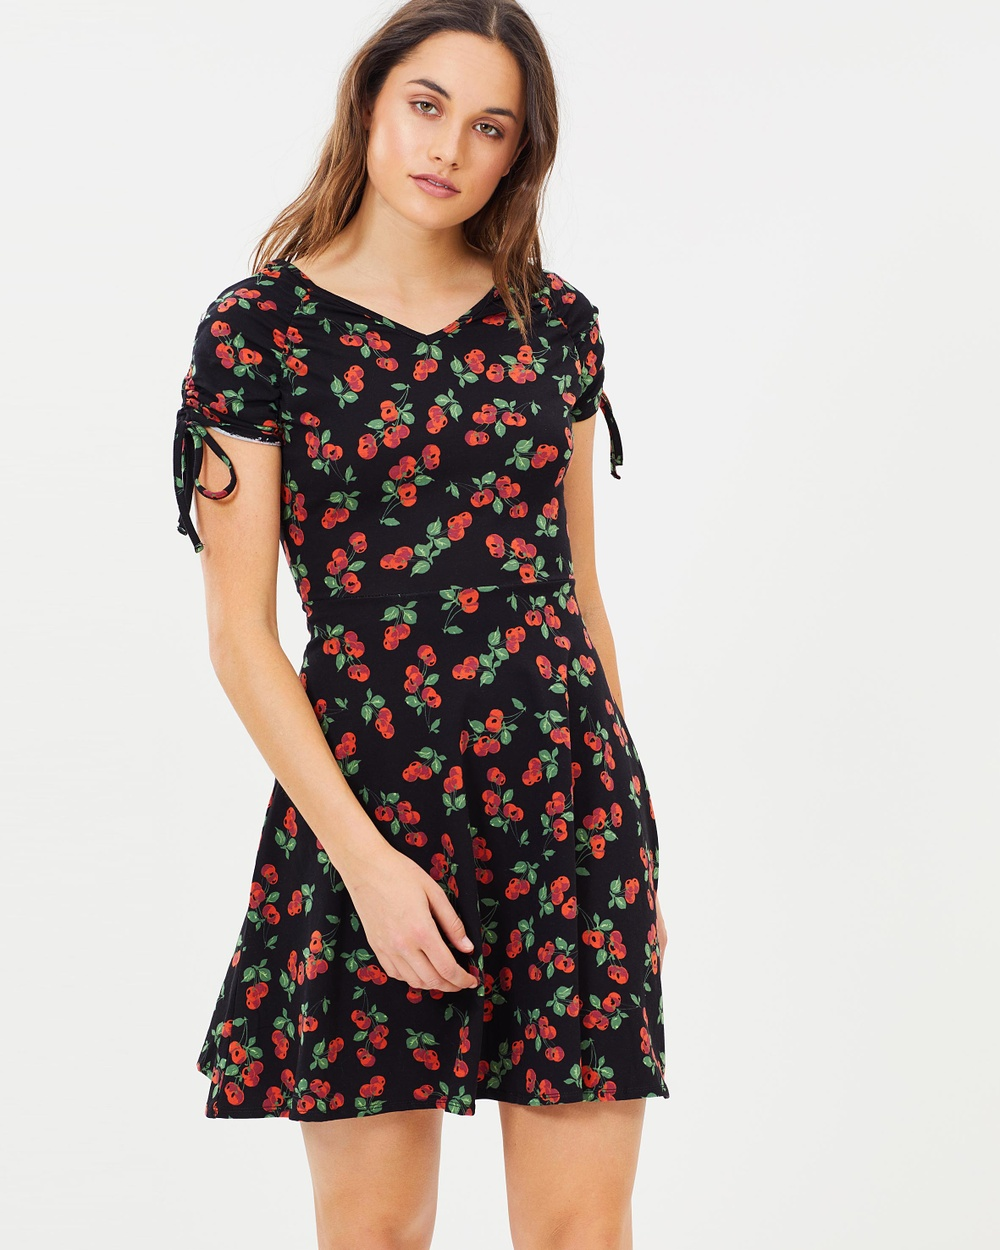 Dorothy Perkins Cherry Drawstring Skater Dress Printed Dresses Navy Blue Cherry Drawstring Skater Dress